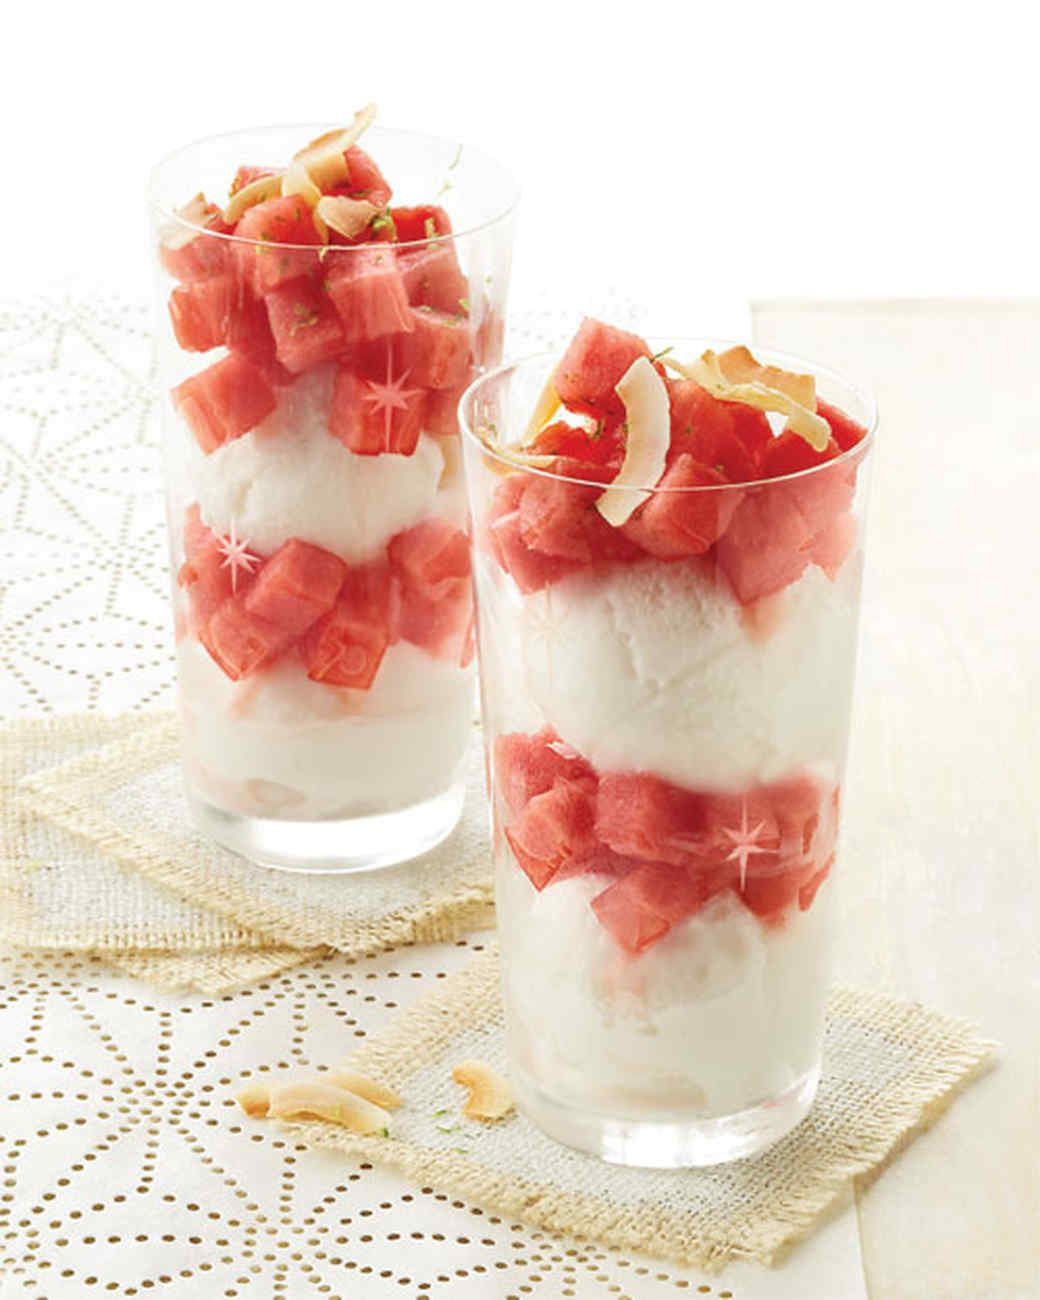 Watermelon and Coconut Sorbet Parfaits Recipe | Martha Stewart Living — Cutting fruit and scooping ice cream are the only skills you need to make these sensational parfaits.